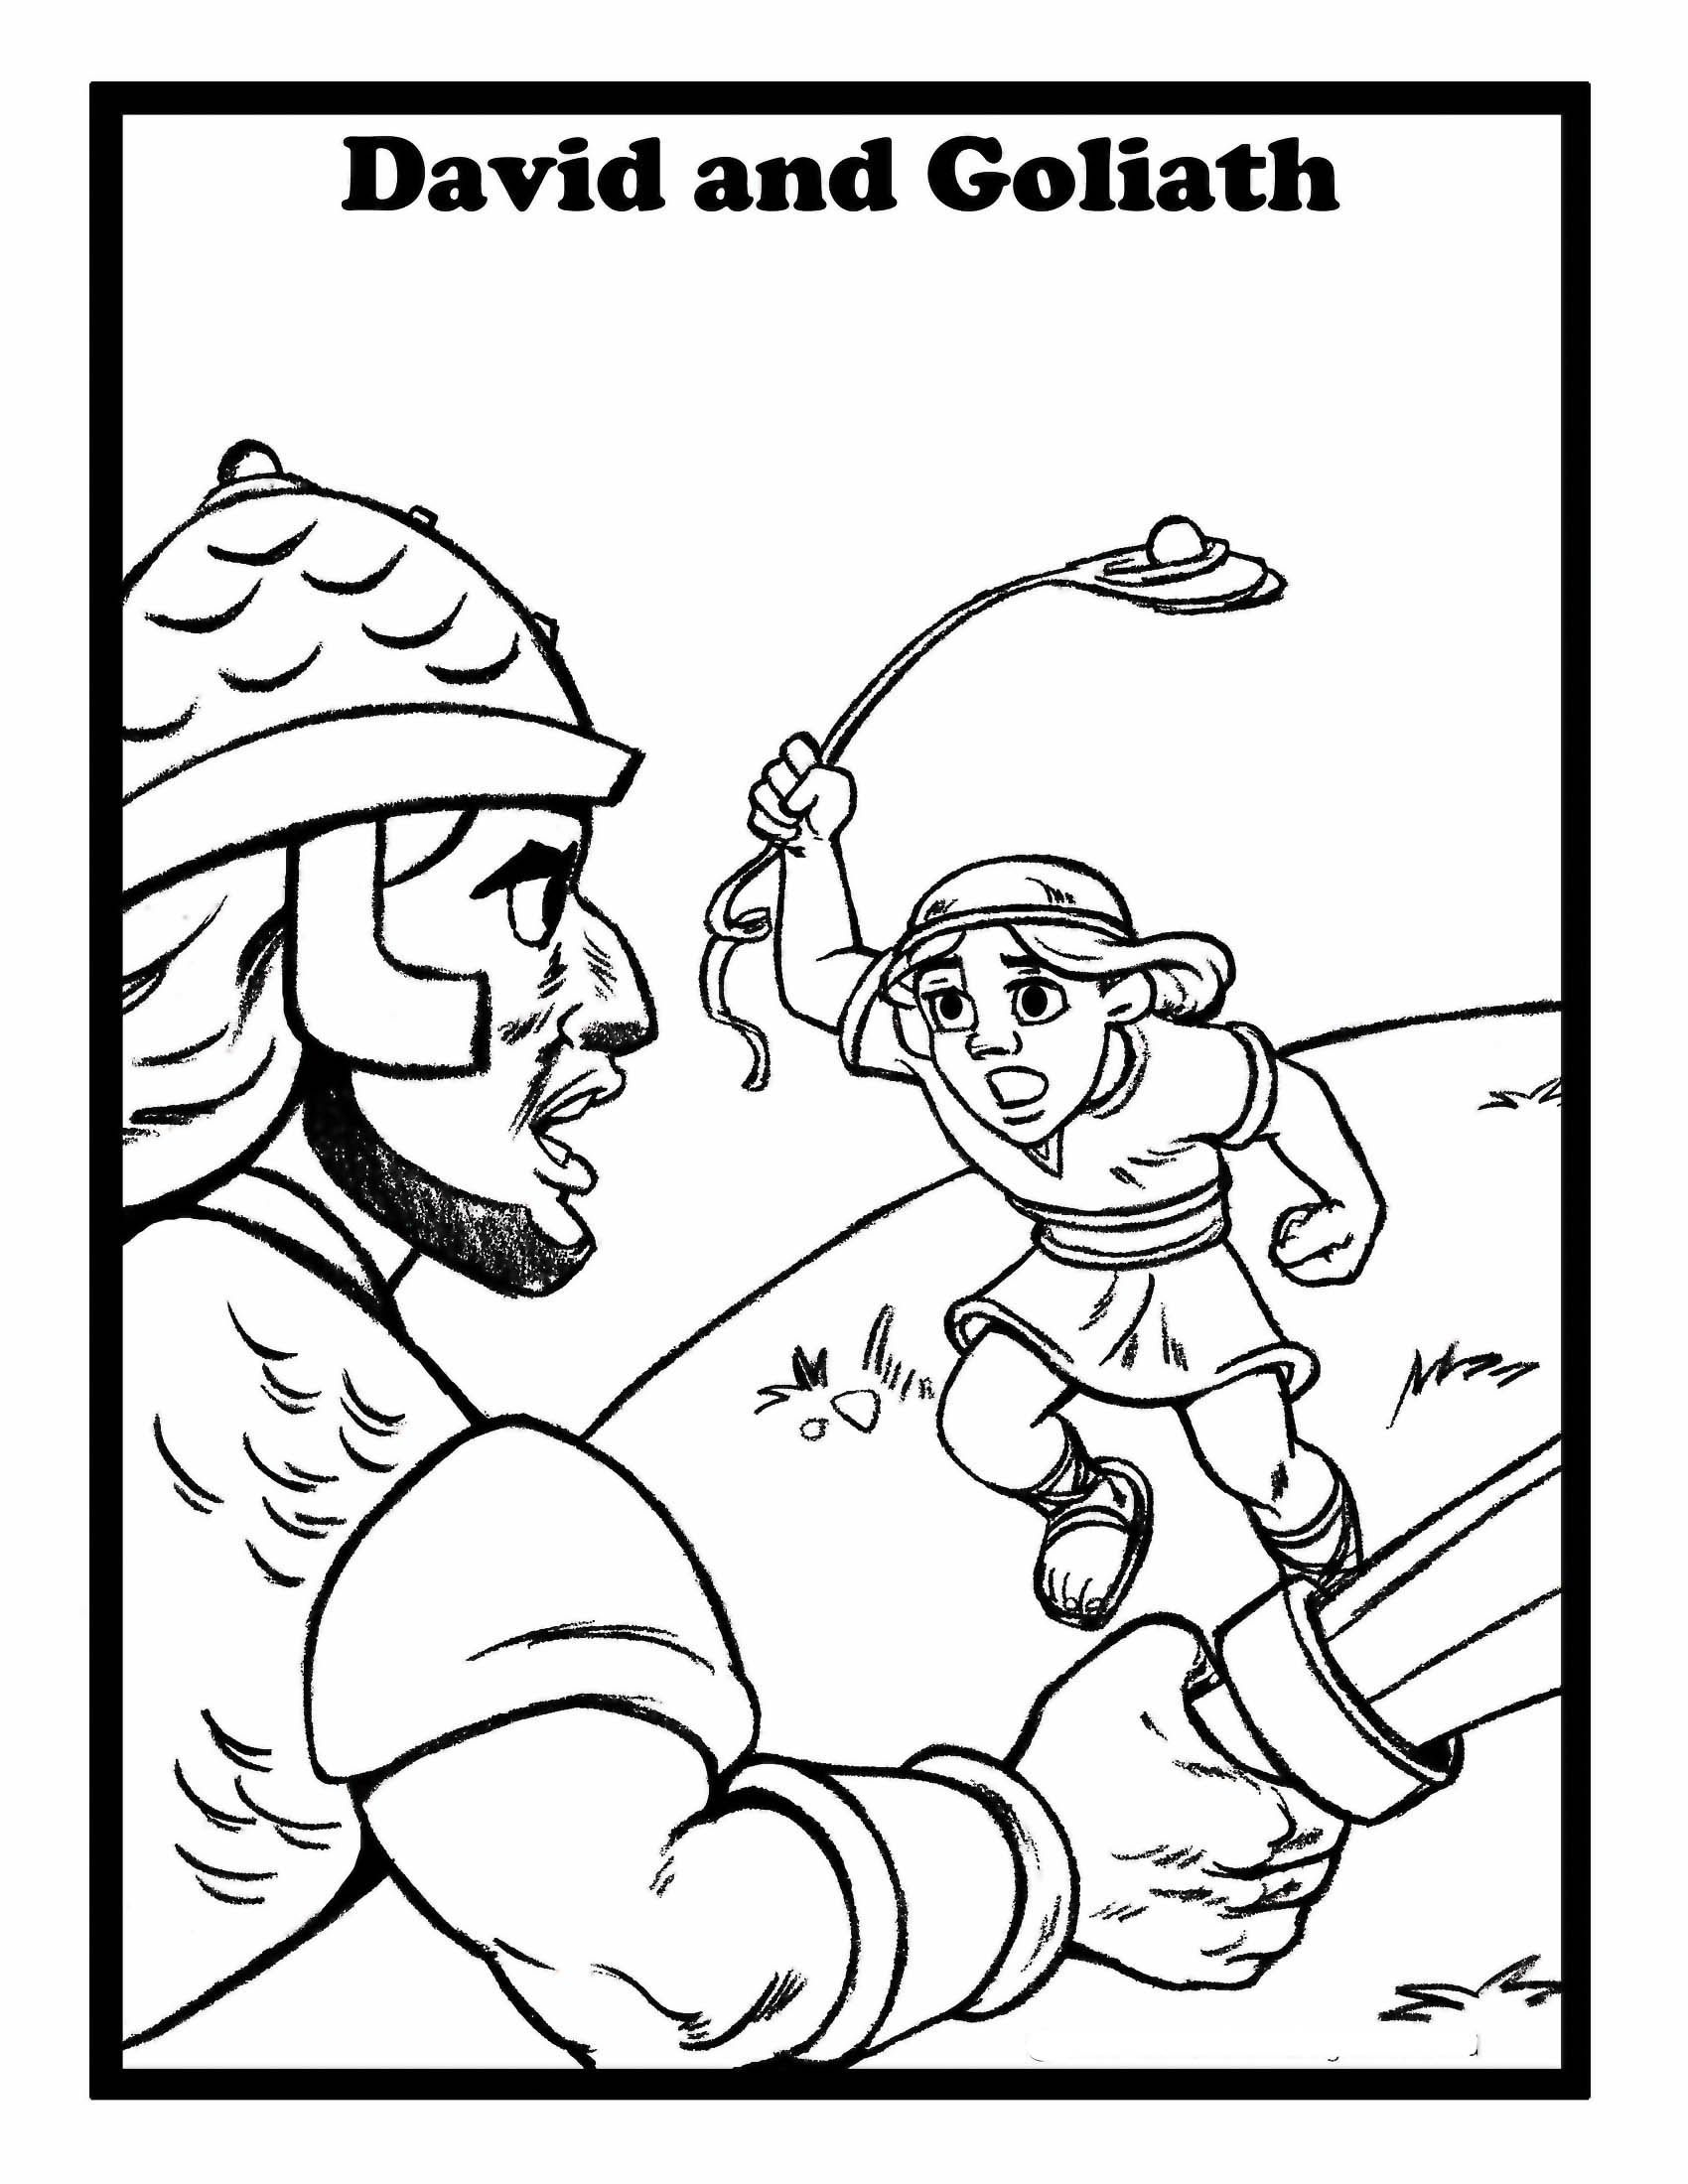 Free coloring pages bible - Kids Bible Coloring Pages On Courage Bible_coloring_pages52 Jpg